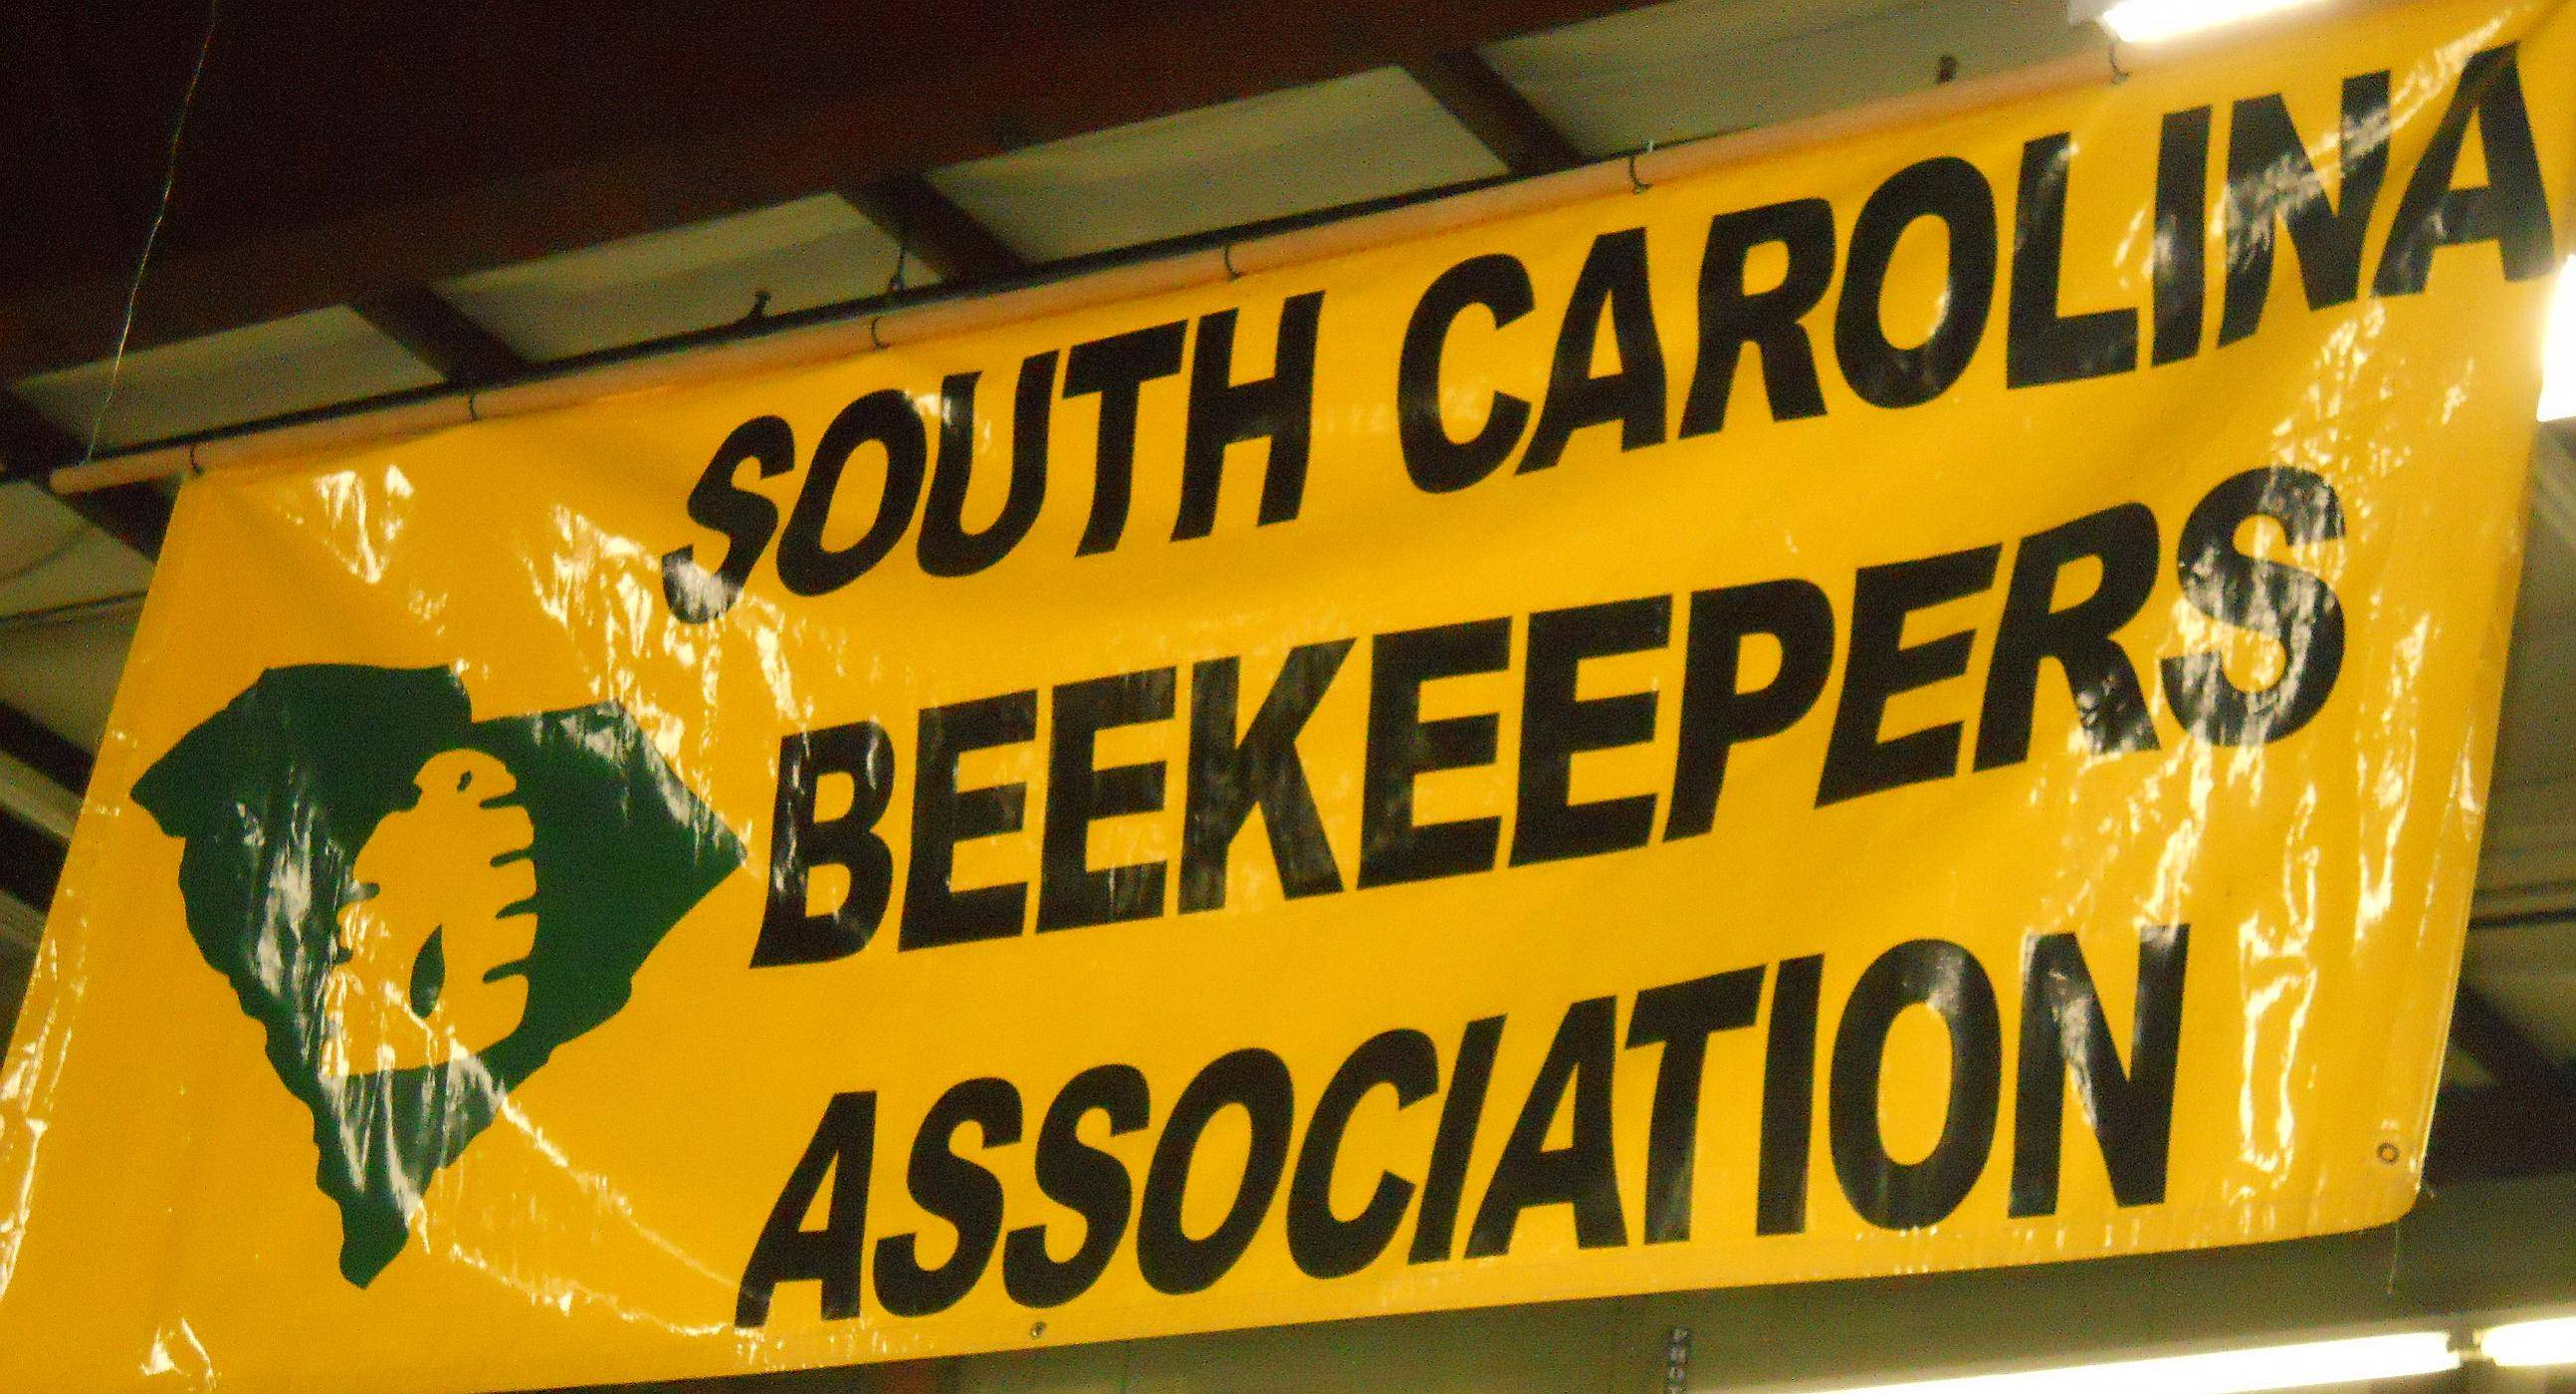 SC Beekeepers Association